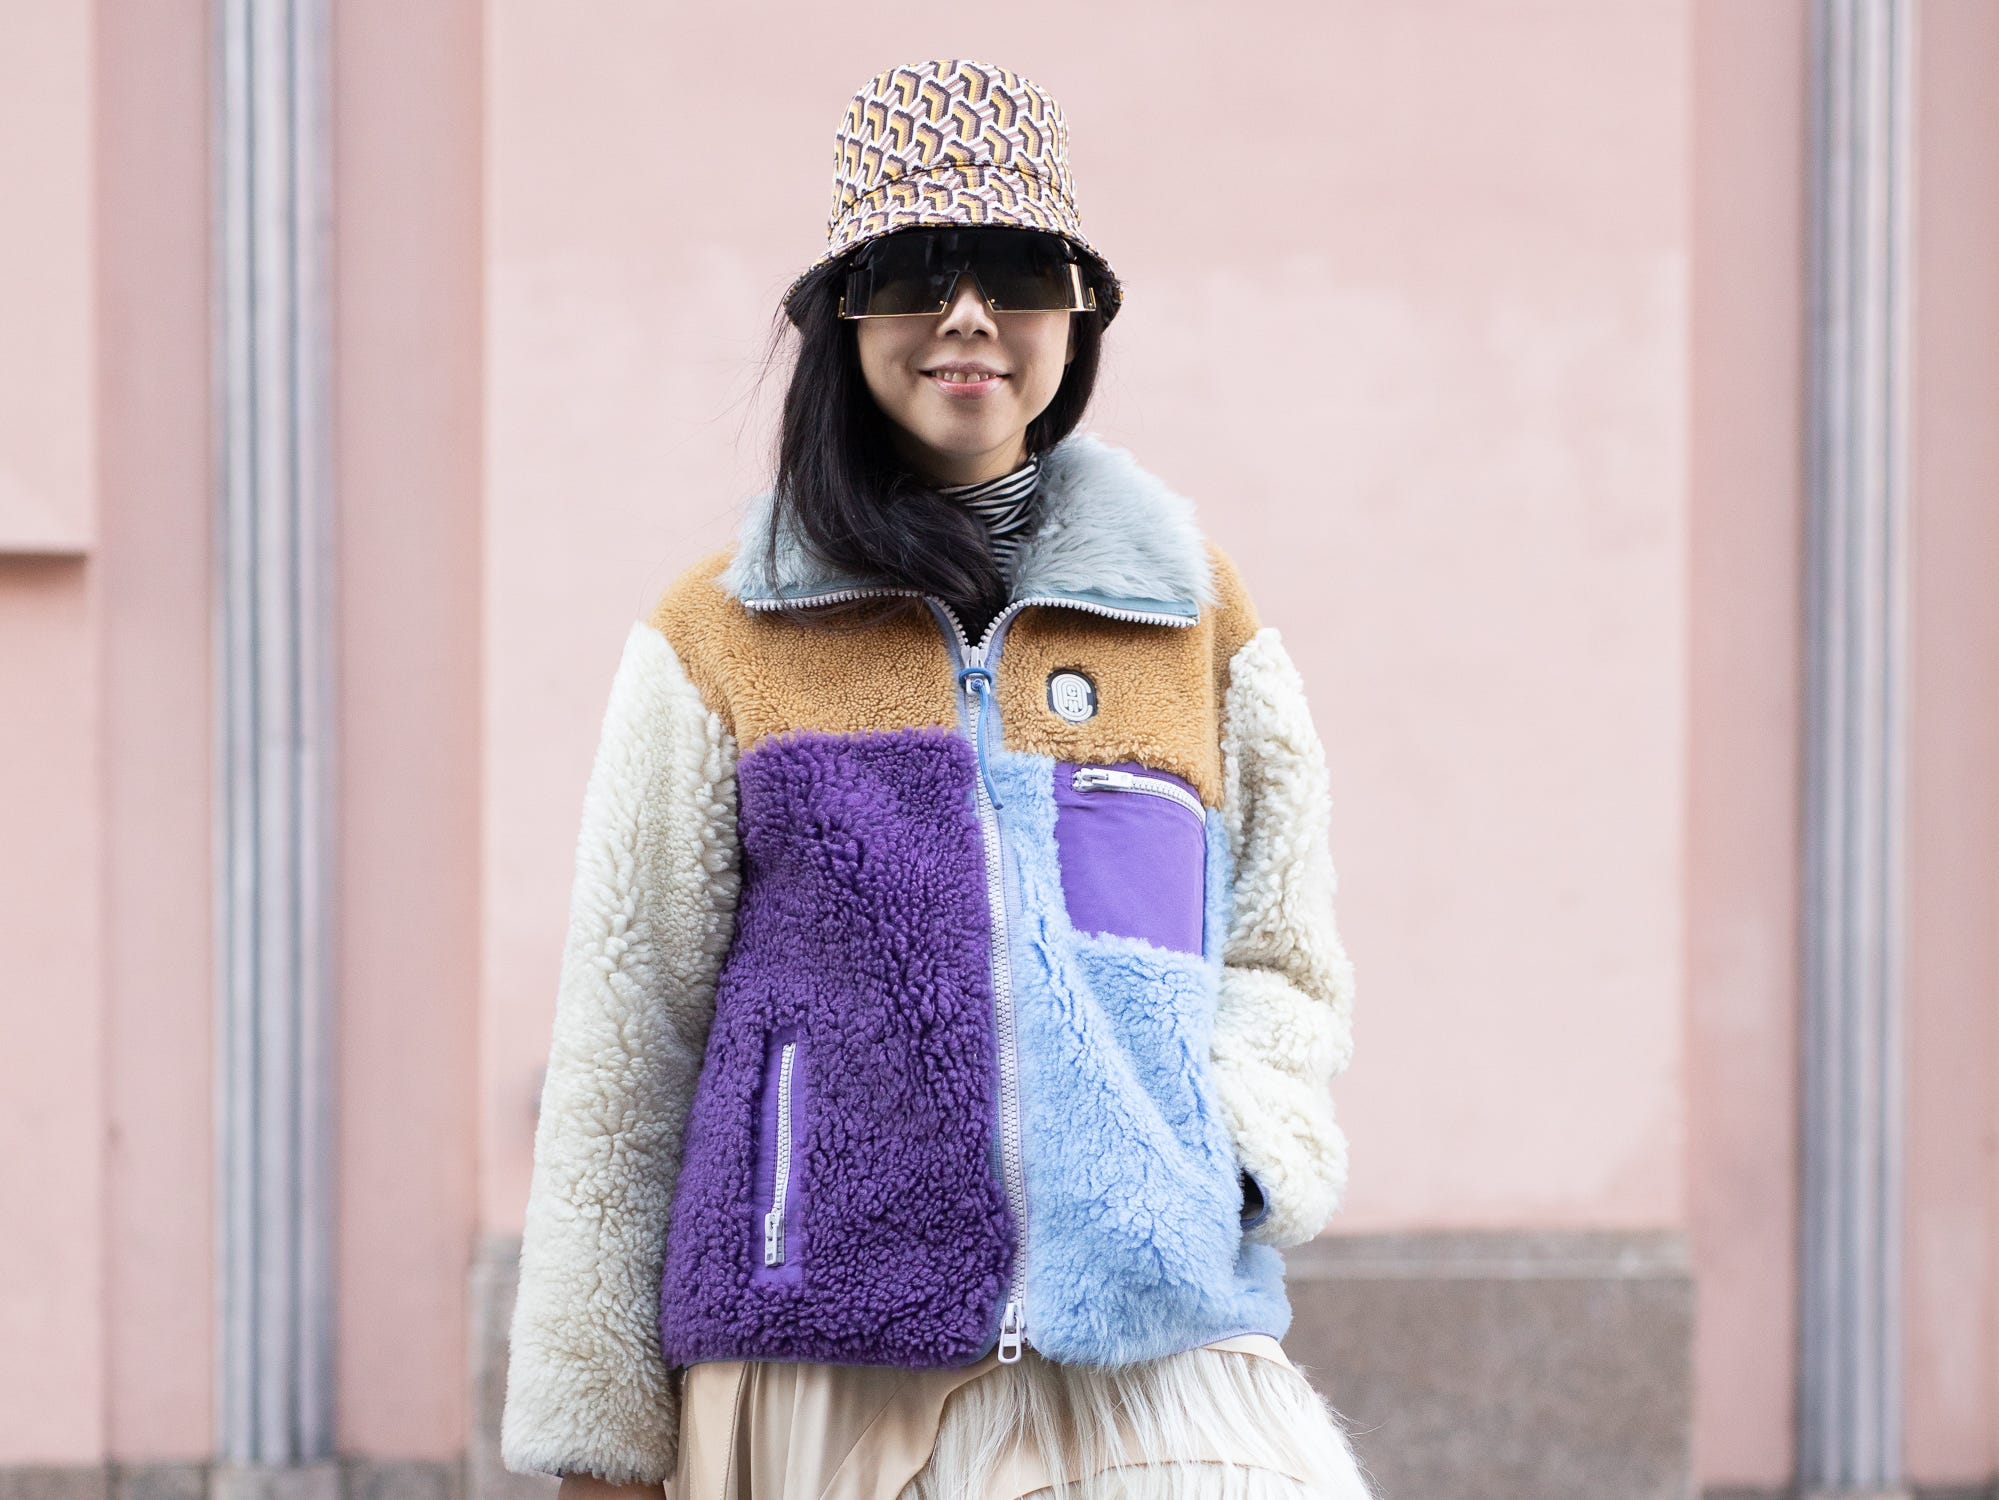 Susie Lau is seen on the street during New York Fashion Week AW19 wearing fleece jacket with fringe skirt and Prada bucket hat on February 10, 2019 in New York City.